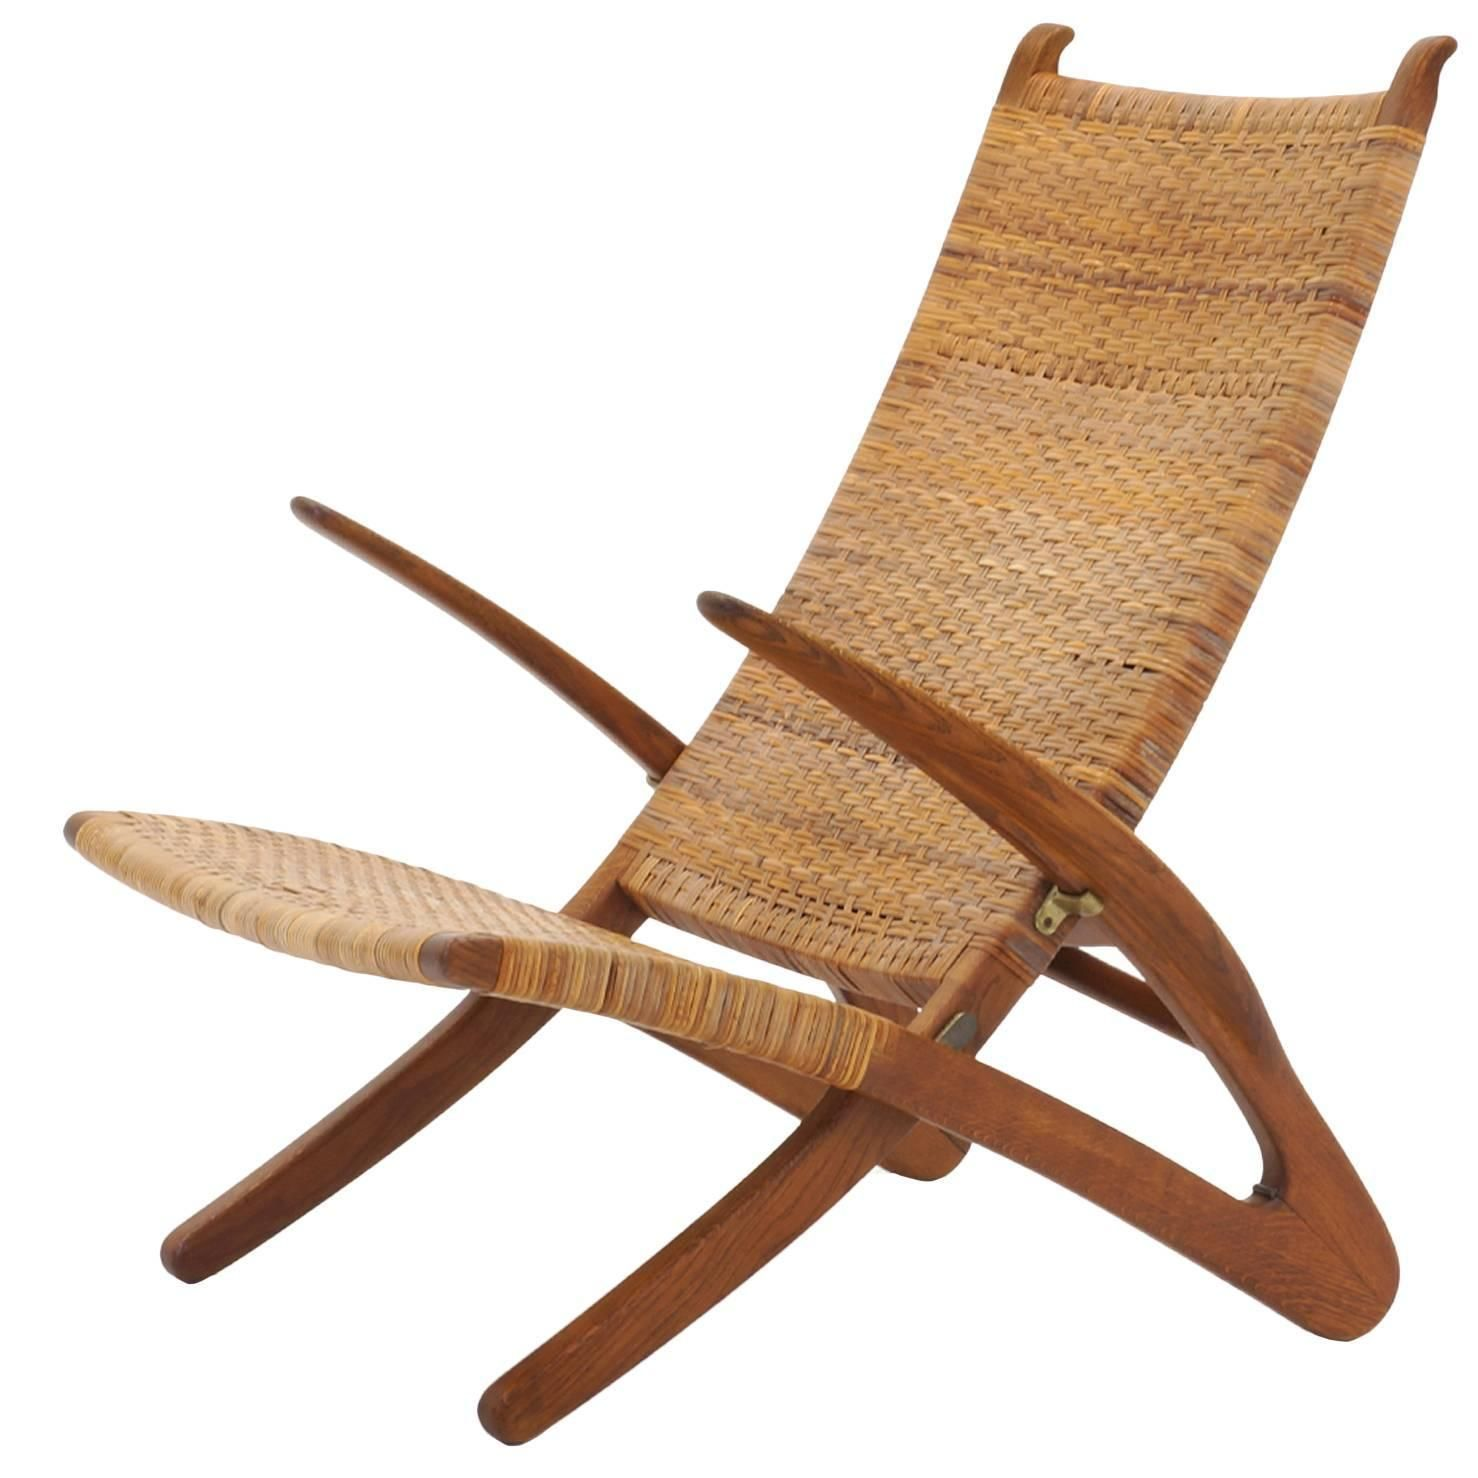 goods portable cheap outdoor furniture wicker chair folding coronado patio multibrown pe sonoma size of lisbon full plastic lounge chaise lifetm maureen for